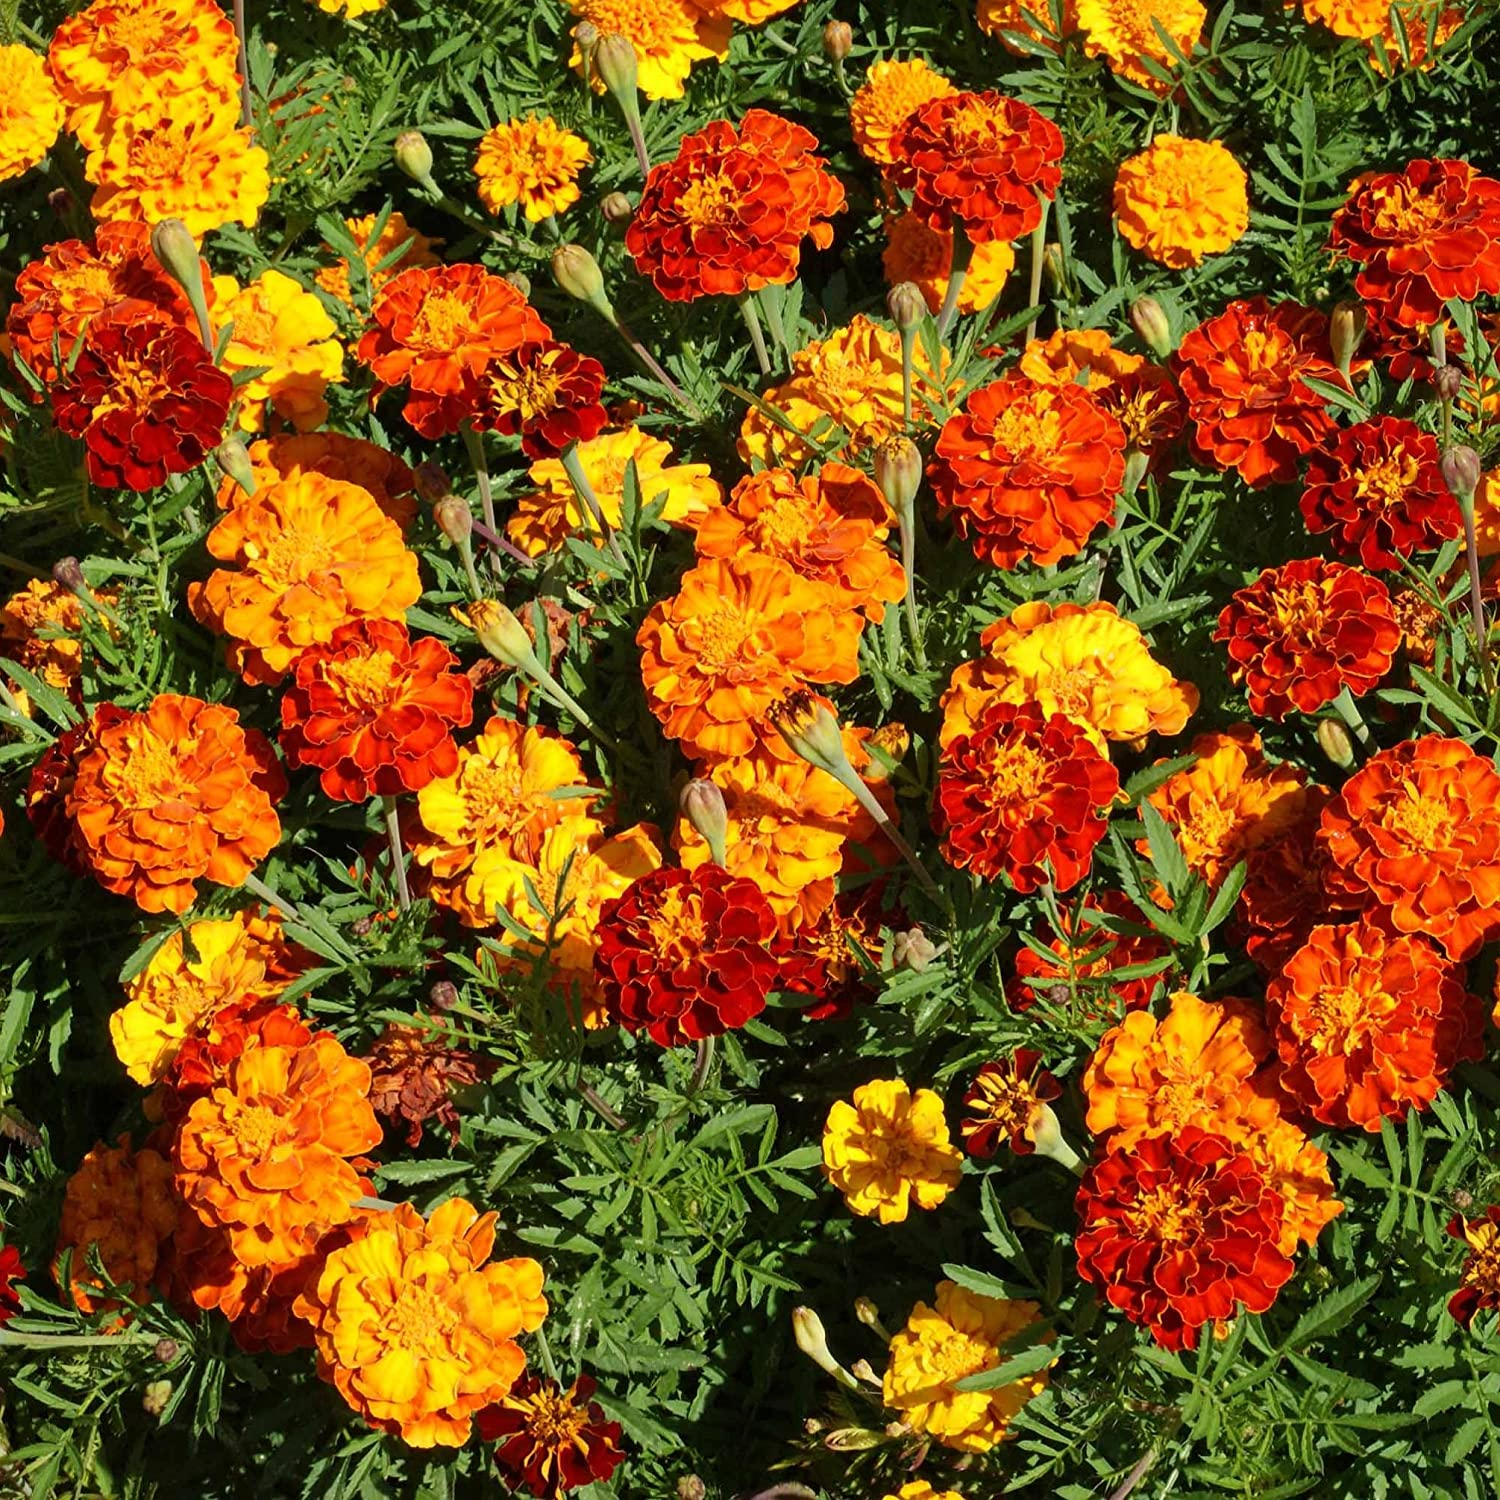 Amazon Com Outsidepride Marigold Flower Seed Mix 1000 Seeds Flowering Plants Garden Outdoor